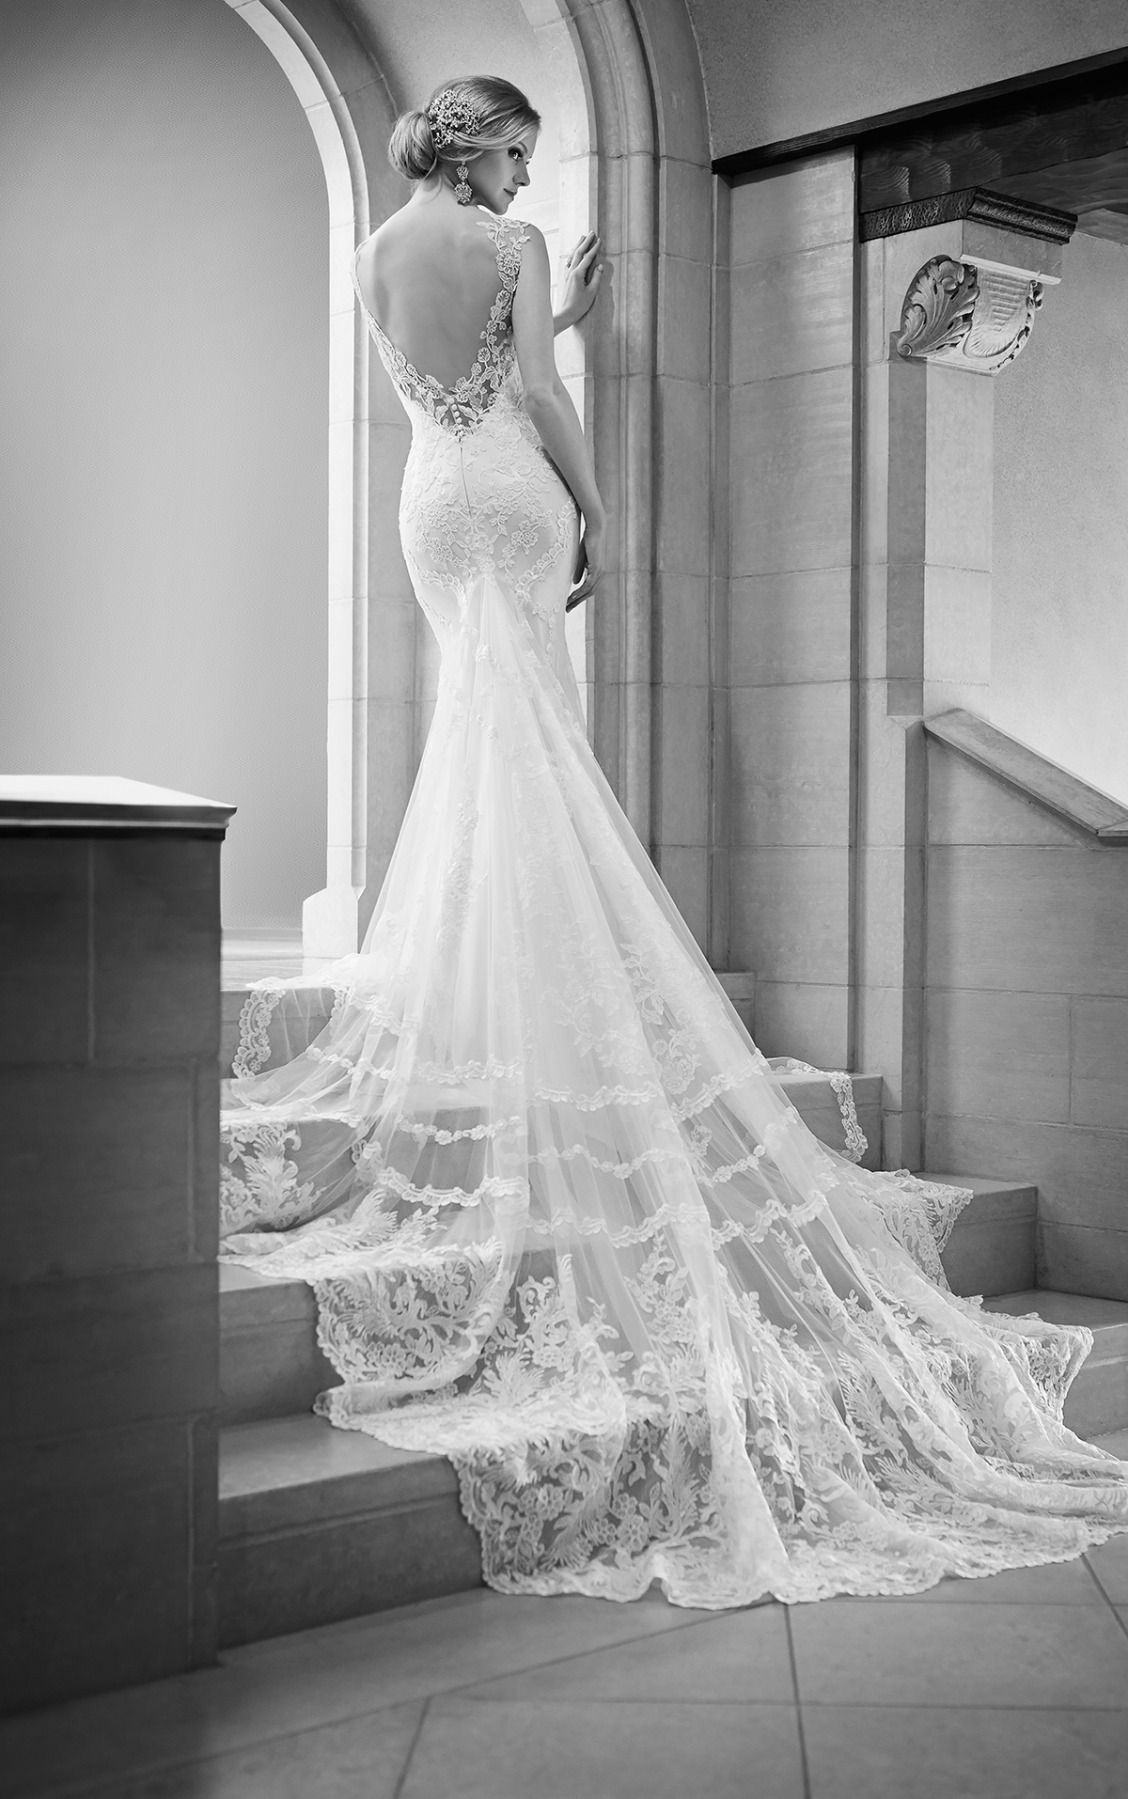 Illusion Back Wedding Dress Martina Liana Wedding Dresses Wedding Dresses Lace Wedding Dress Trends Martina Liana Wedding Dress